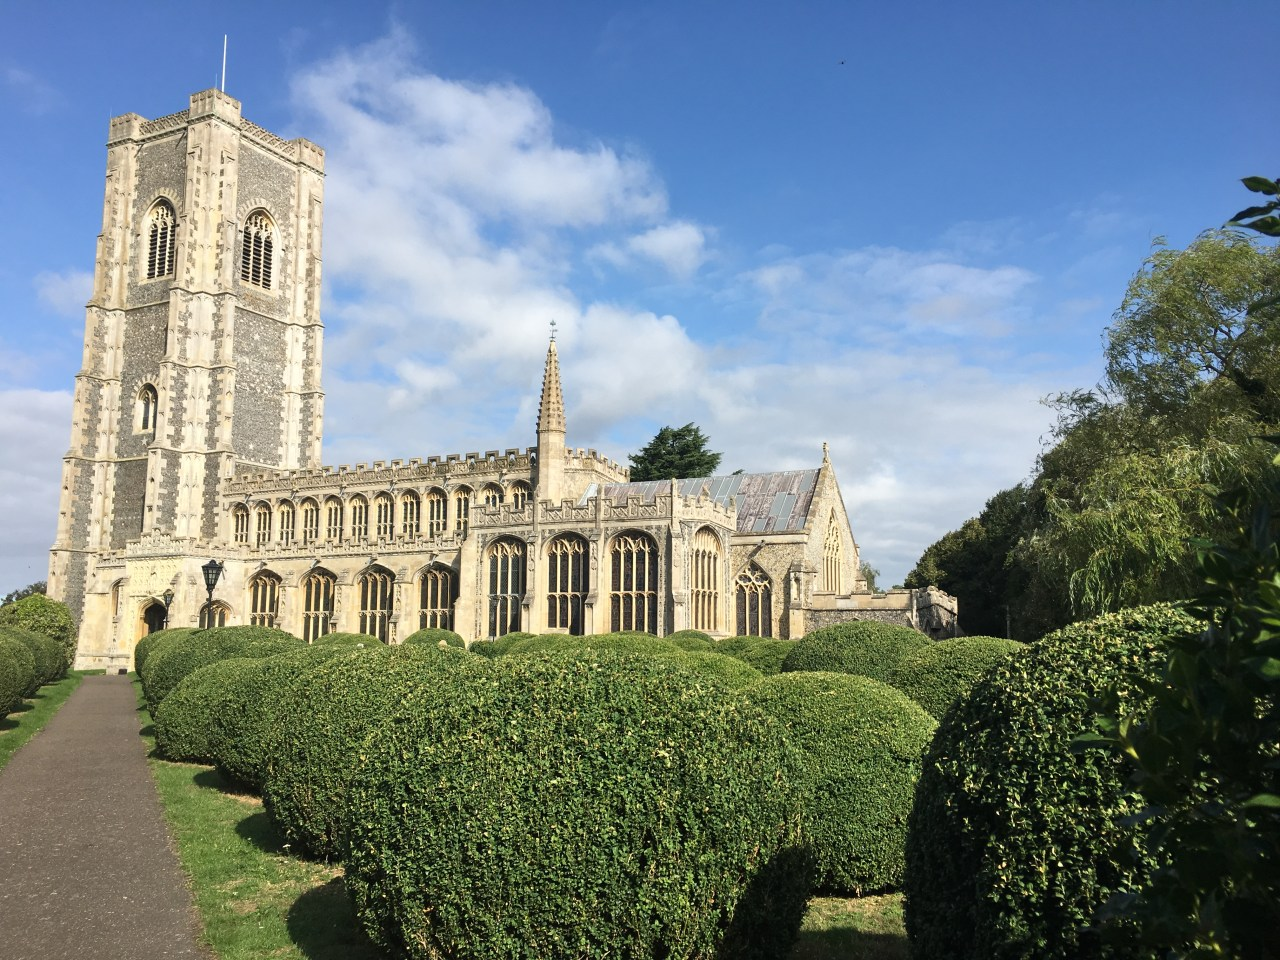 The wool church at Lavenham